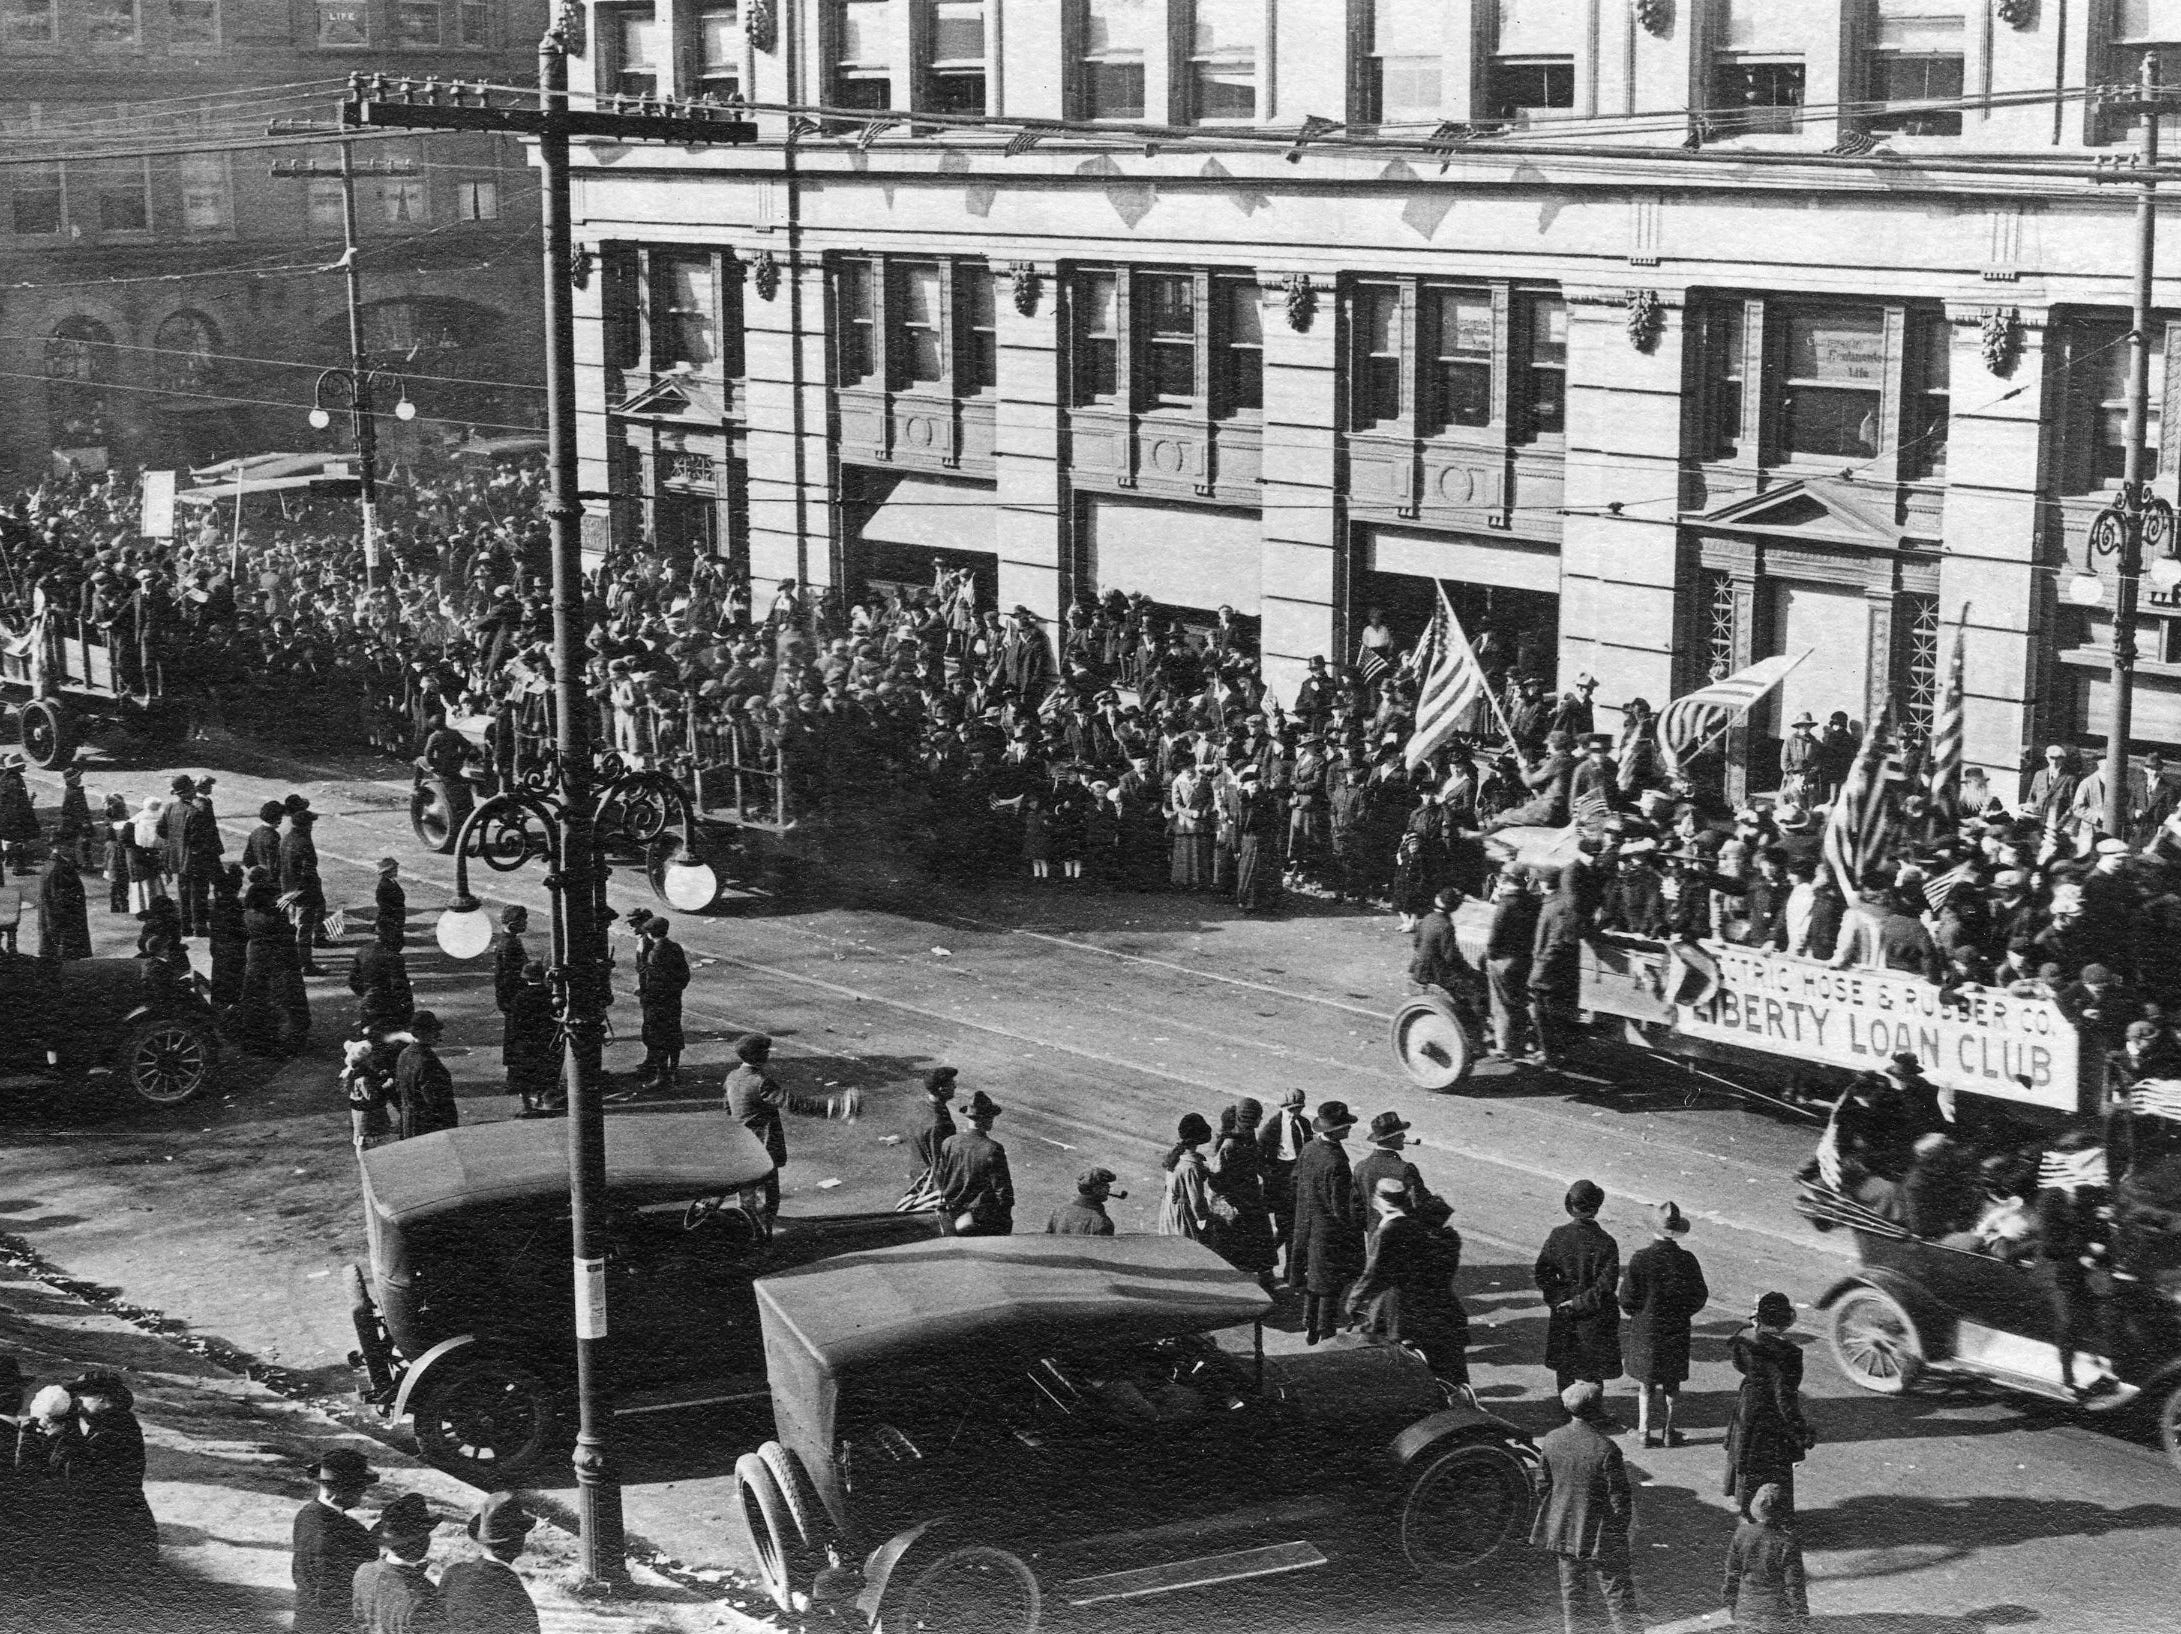 The Liberty Lion Club was one of many groups to march or roll in the Wilmington Peace Day parade after  Armistice Day in 1918.